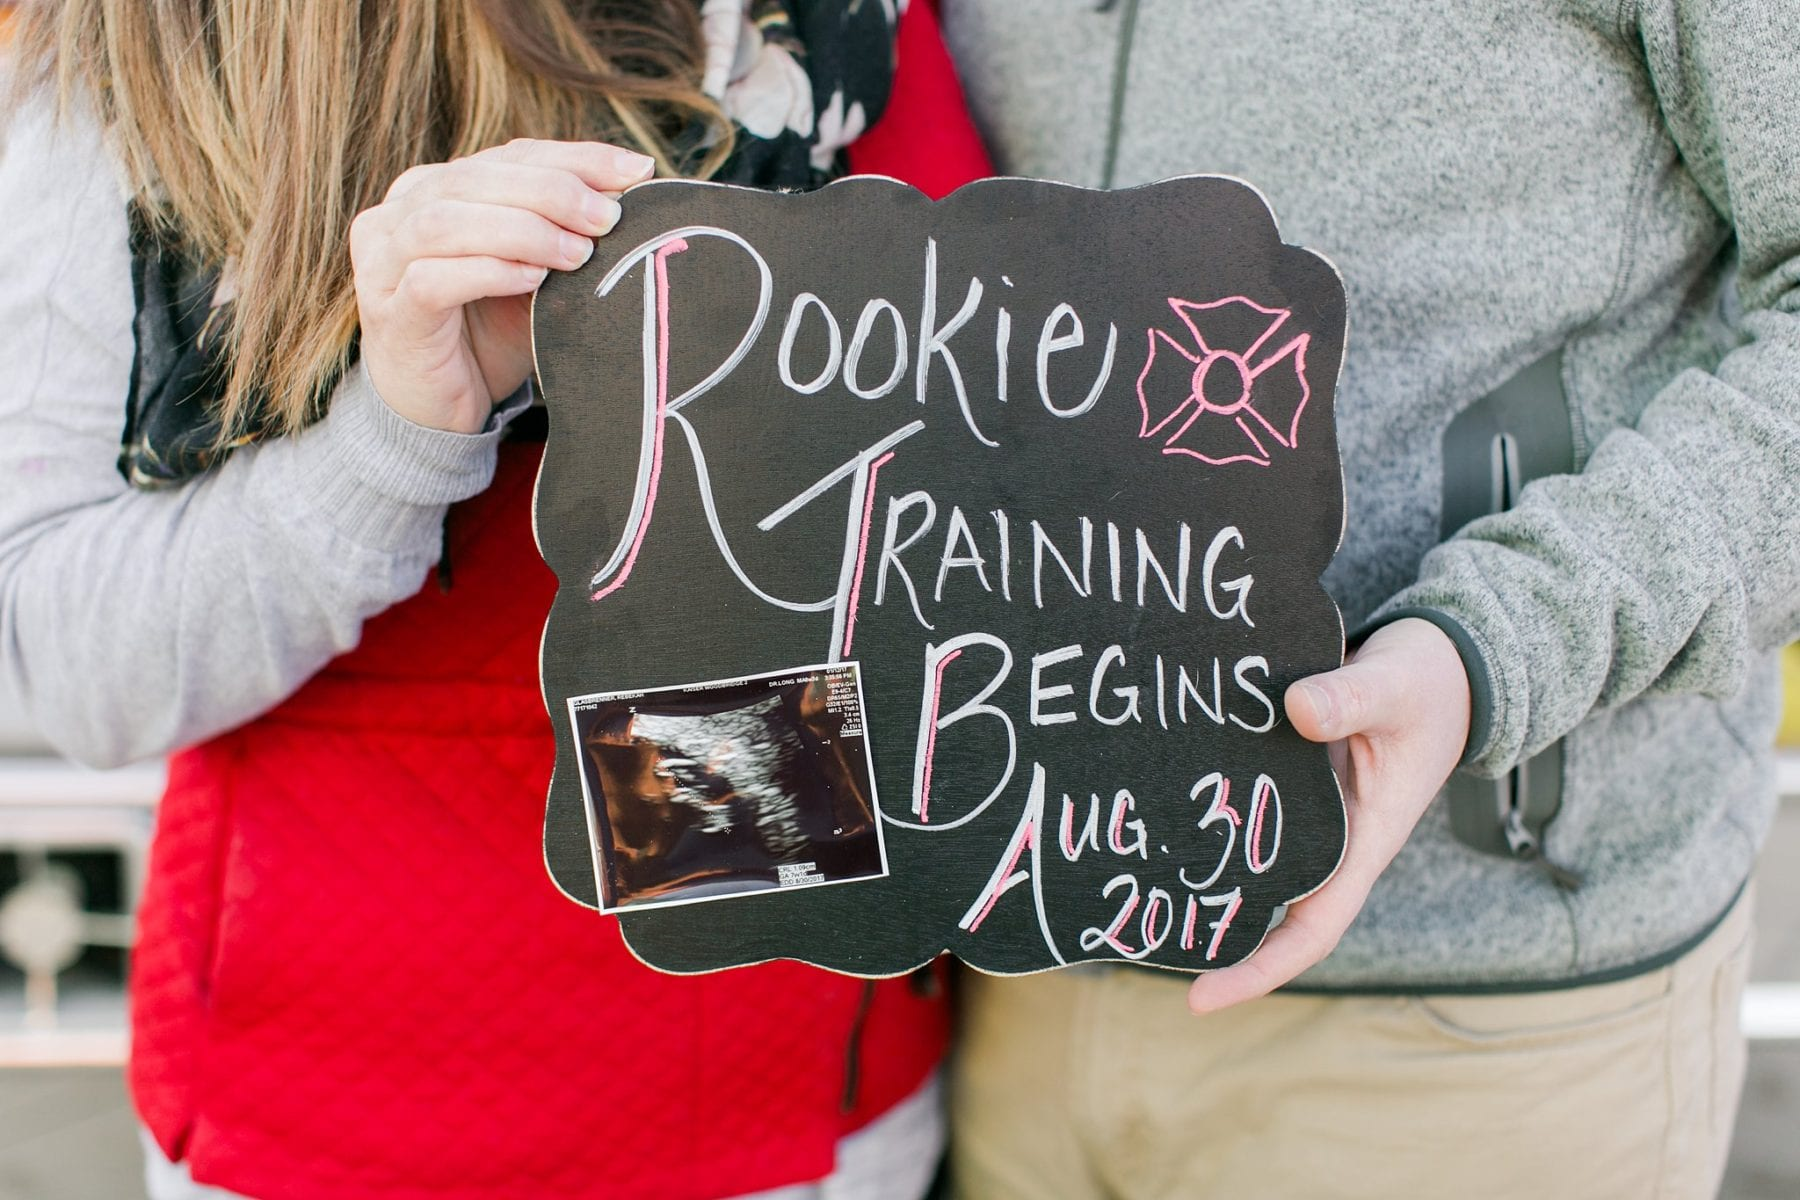 Firefighter Baby Announcement Virginia Photographer Megan Kelsey Photography Jeromy & Becky-39.jpg